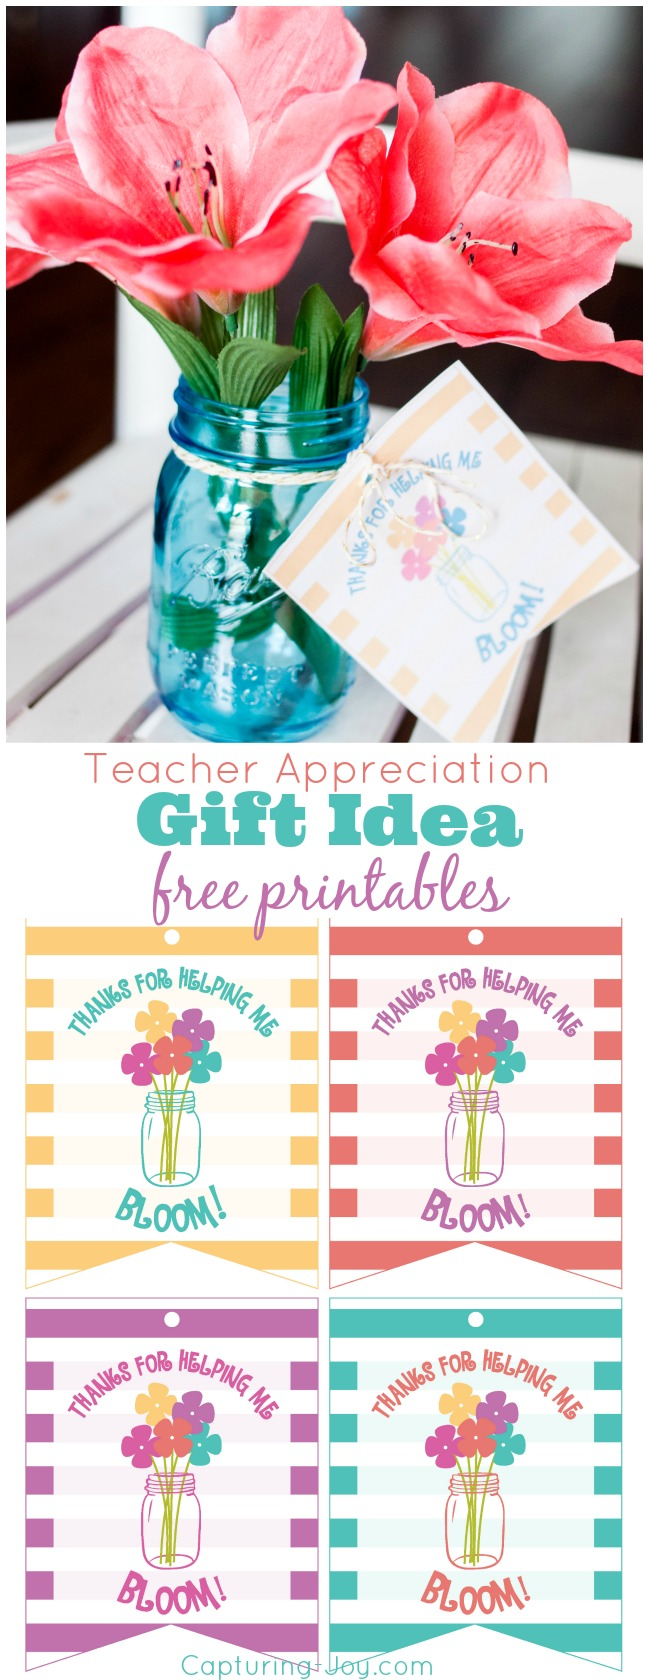 Teacher Appreciation Gift Idea Free Printables